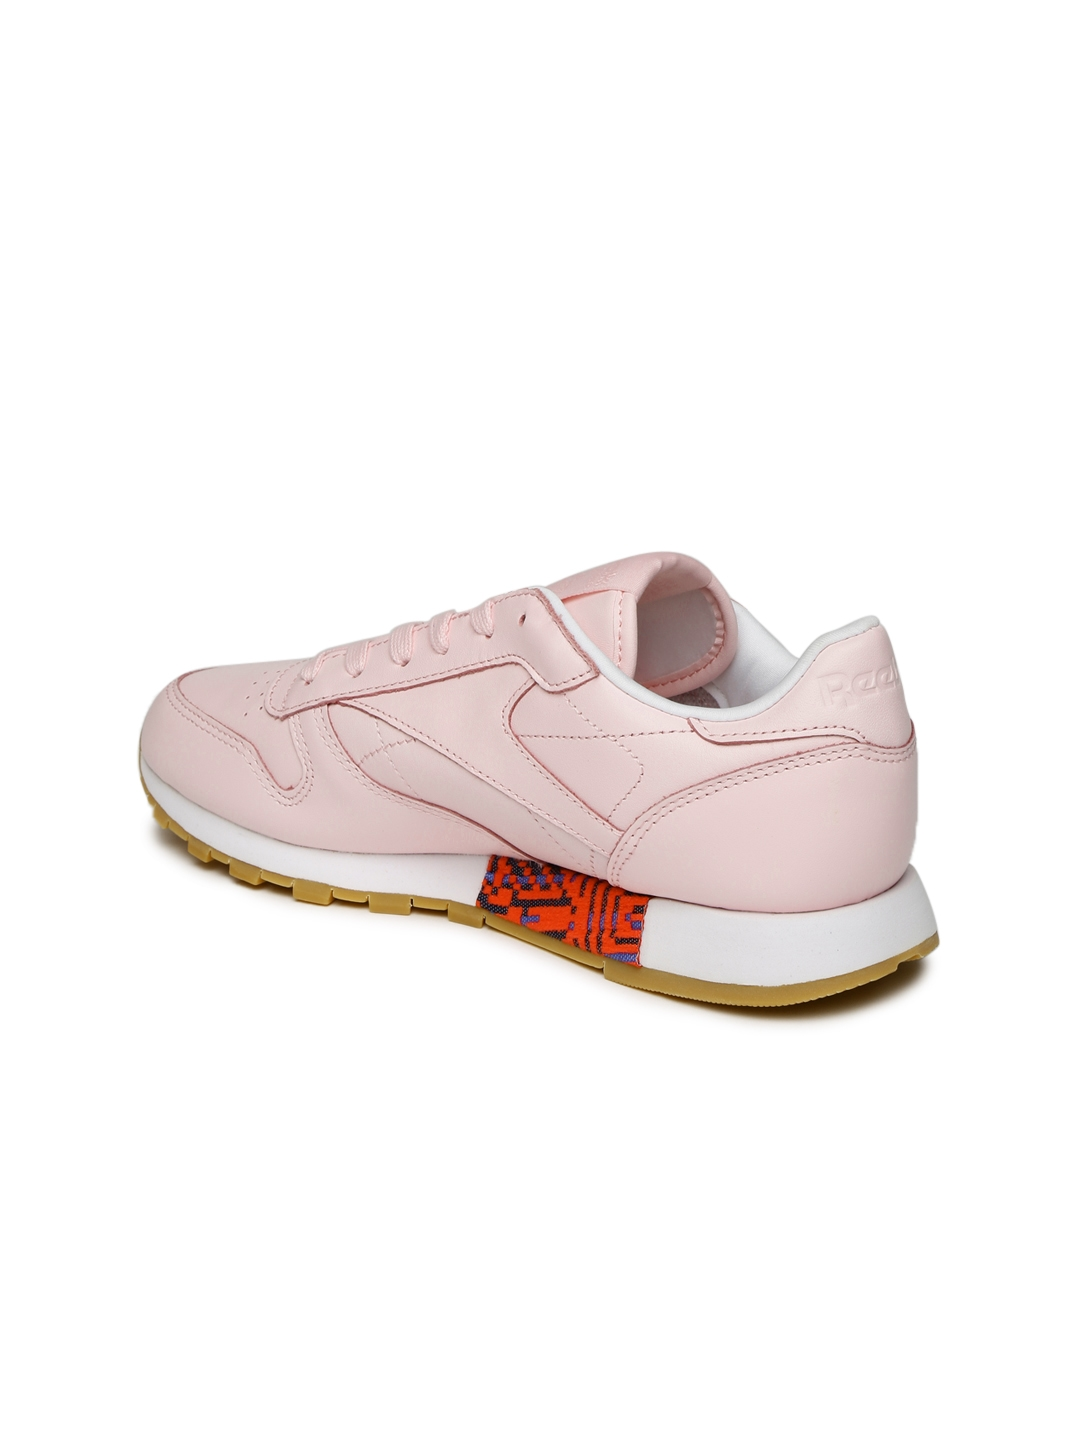 673771d473e9 Buy Reebok Classic Women Pink OLD MEETS NEW Leather Sneakers ...